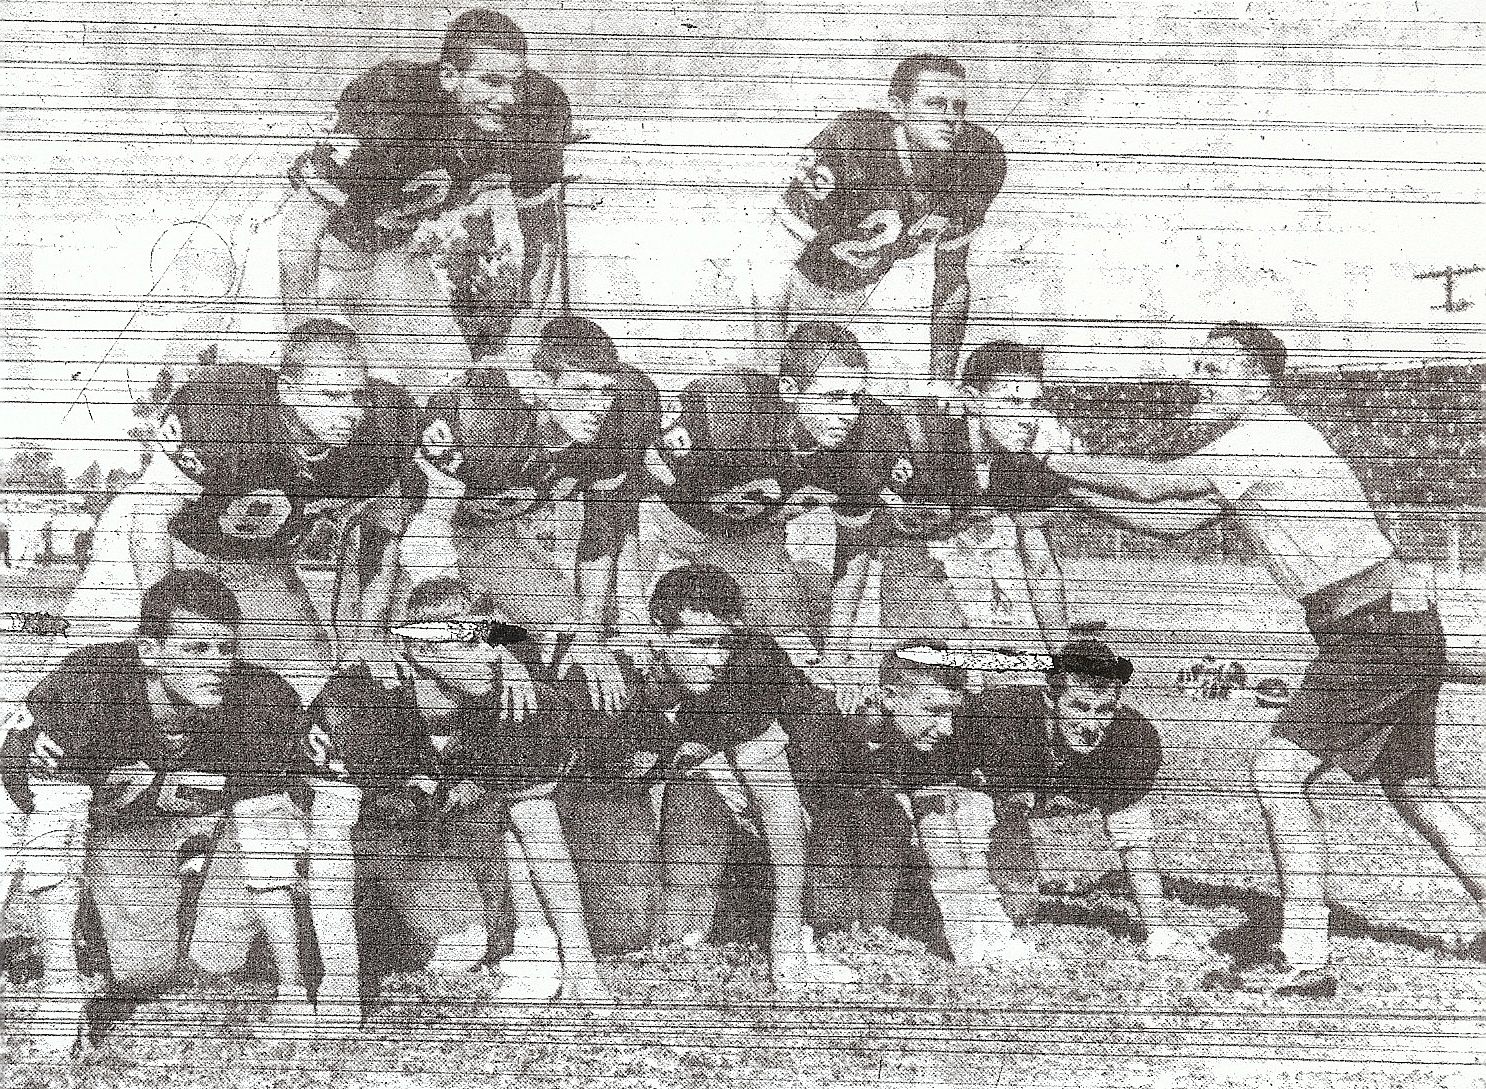 Hoover defenders who stopped San Diego, top (from left): Bobby Smith, Bill Boone. Middle (from left): David Carr, Gary Weide, Jiom Foster, Ron Flisher. Bottom (from left) Dale Twombley, Roger Seeman, Richard Gauthier, Bill (Sledge) Homik, Bob Bishop.